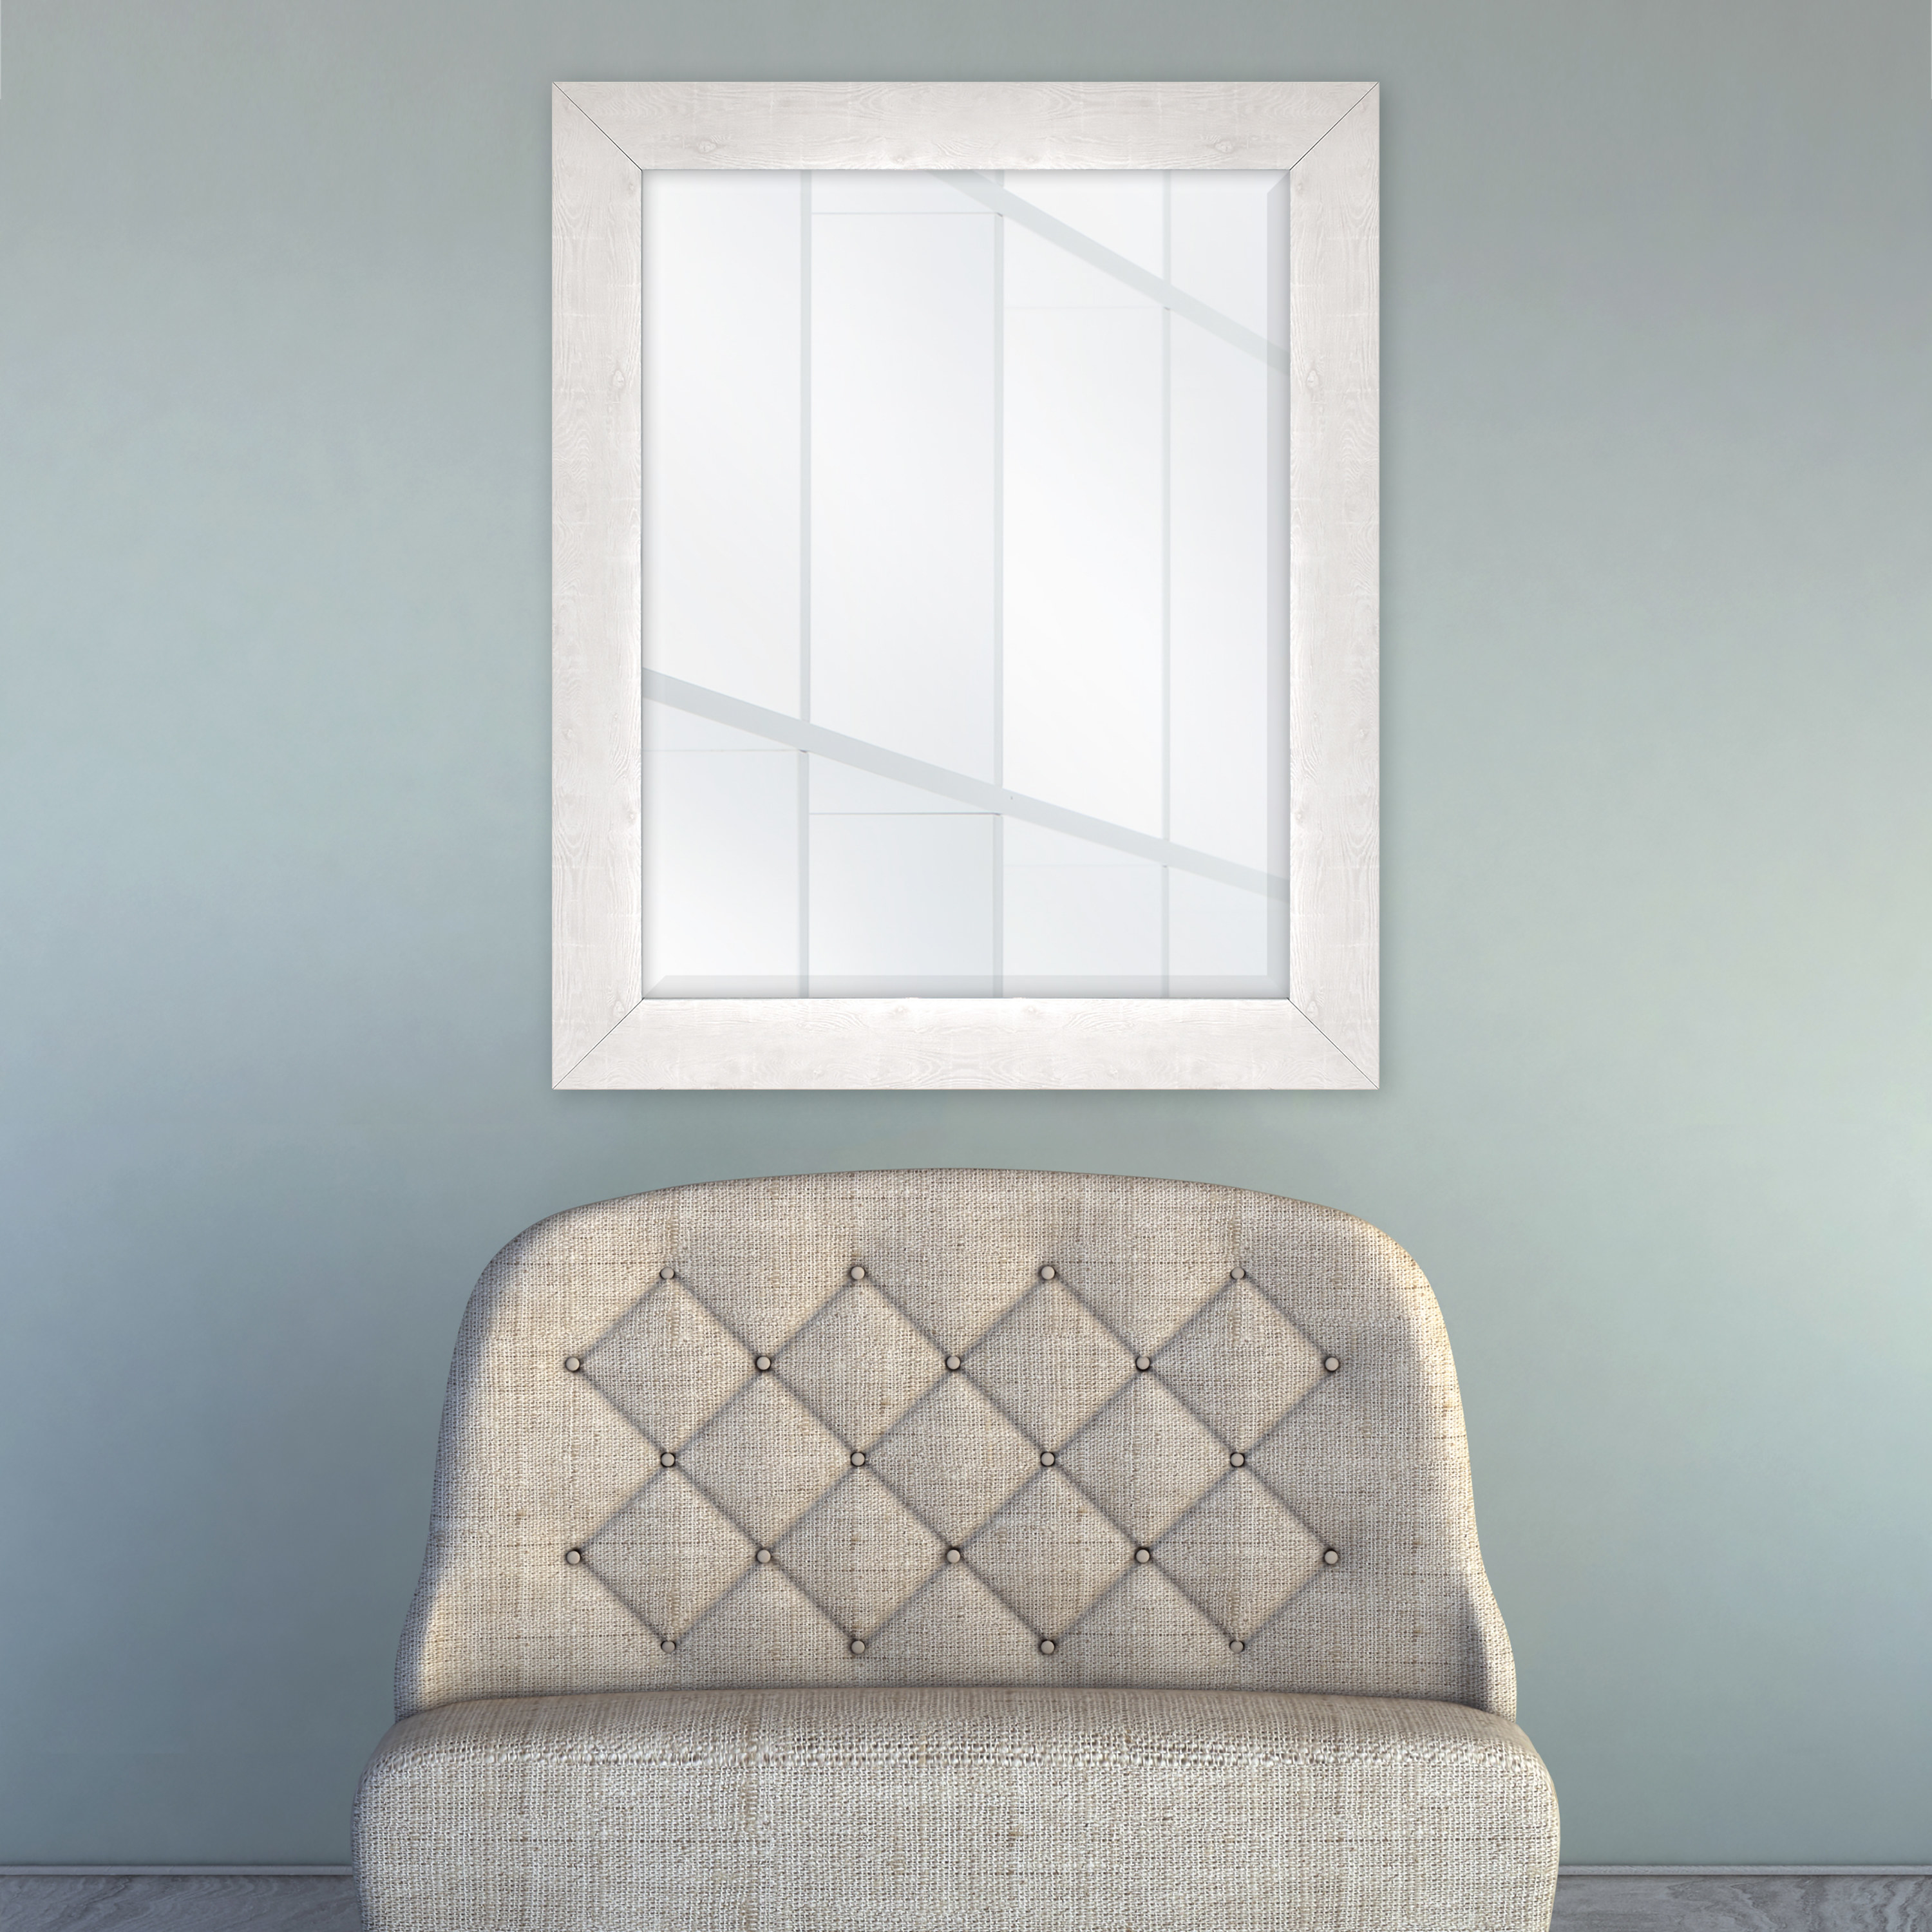 A wall mirror in a home